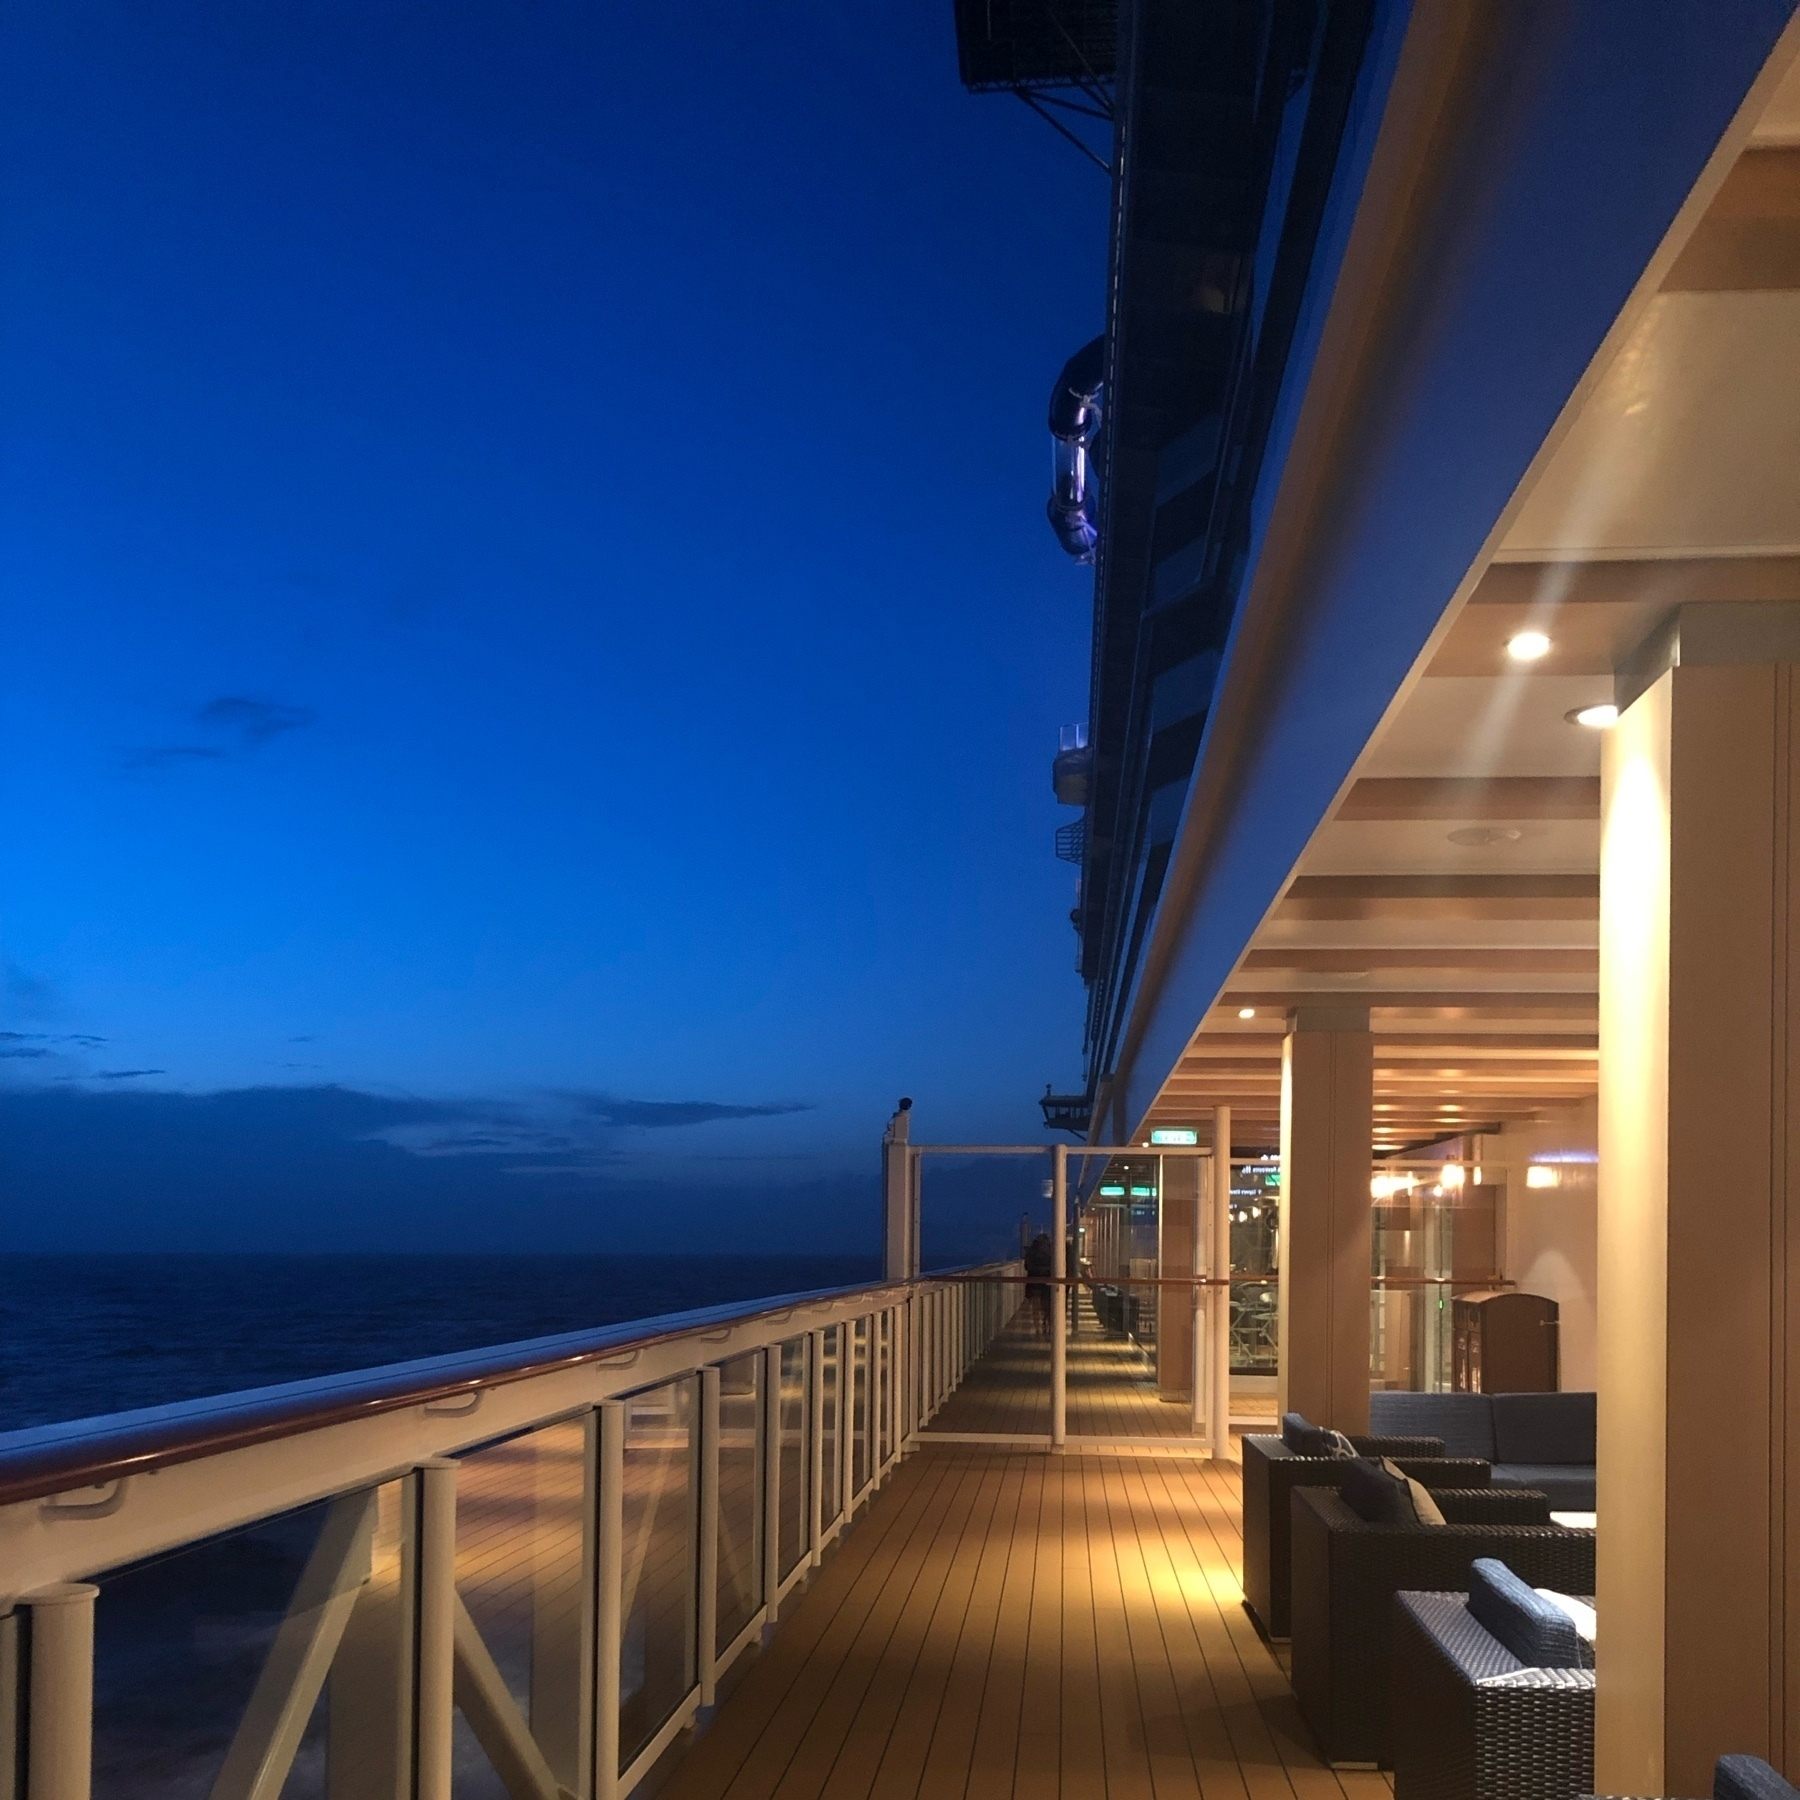 Azure blue light surrounds a cruise ship at fusk. The light of the promenade deck is golden yellow, the walking path shoots straight forward, to the left, the rail and water.